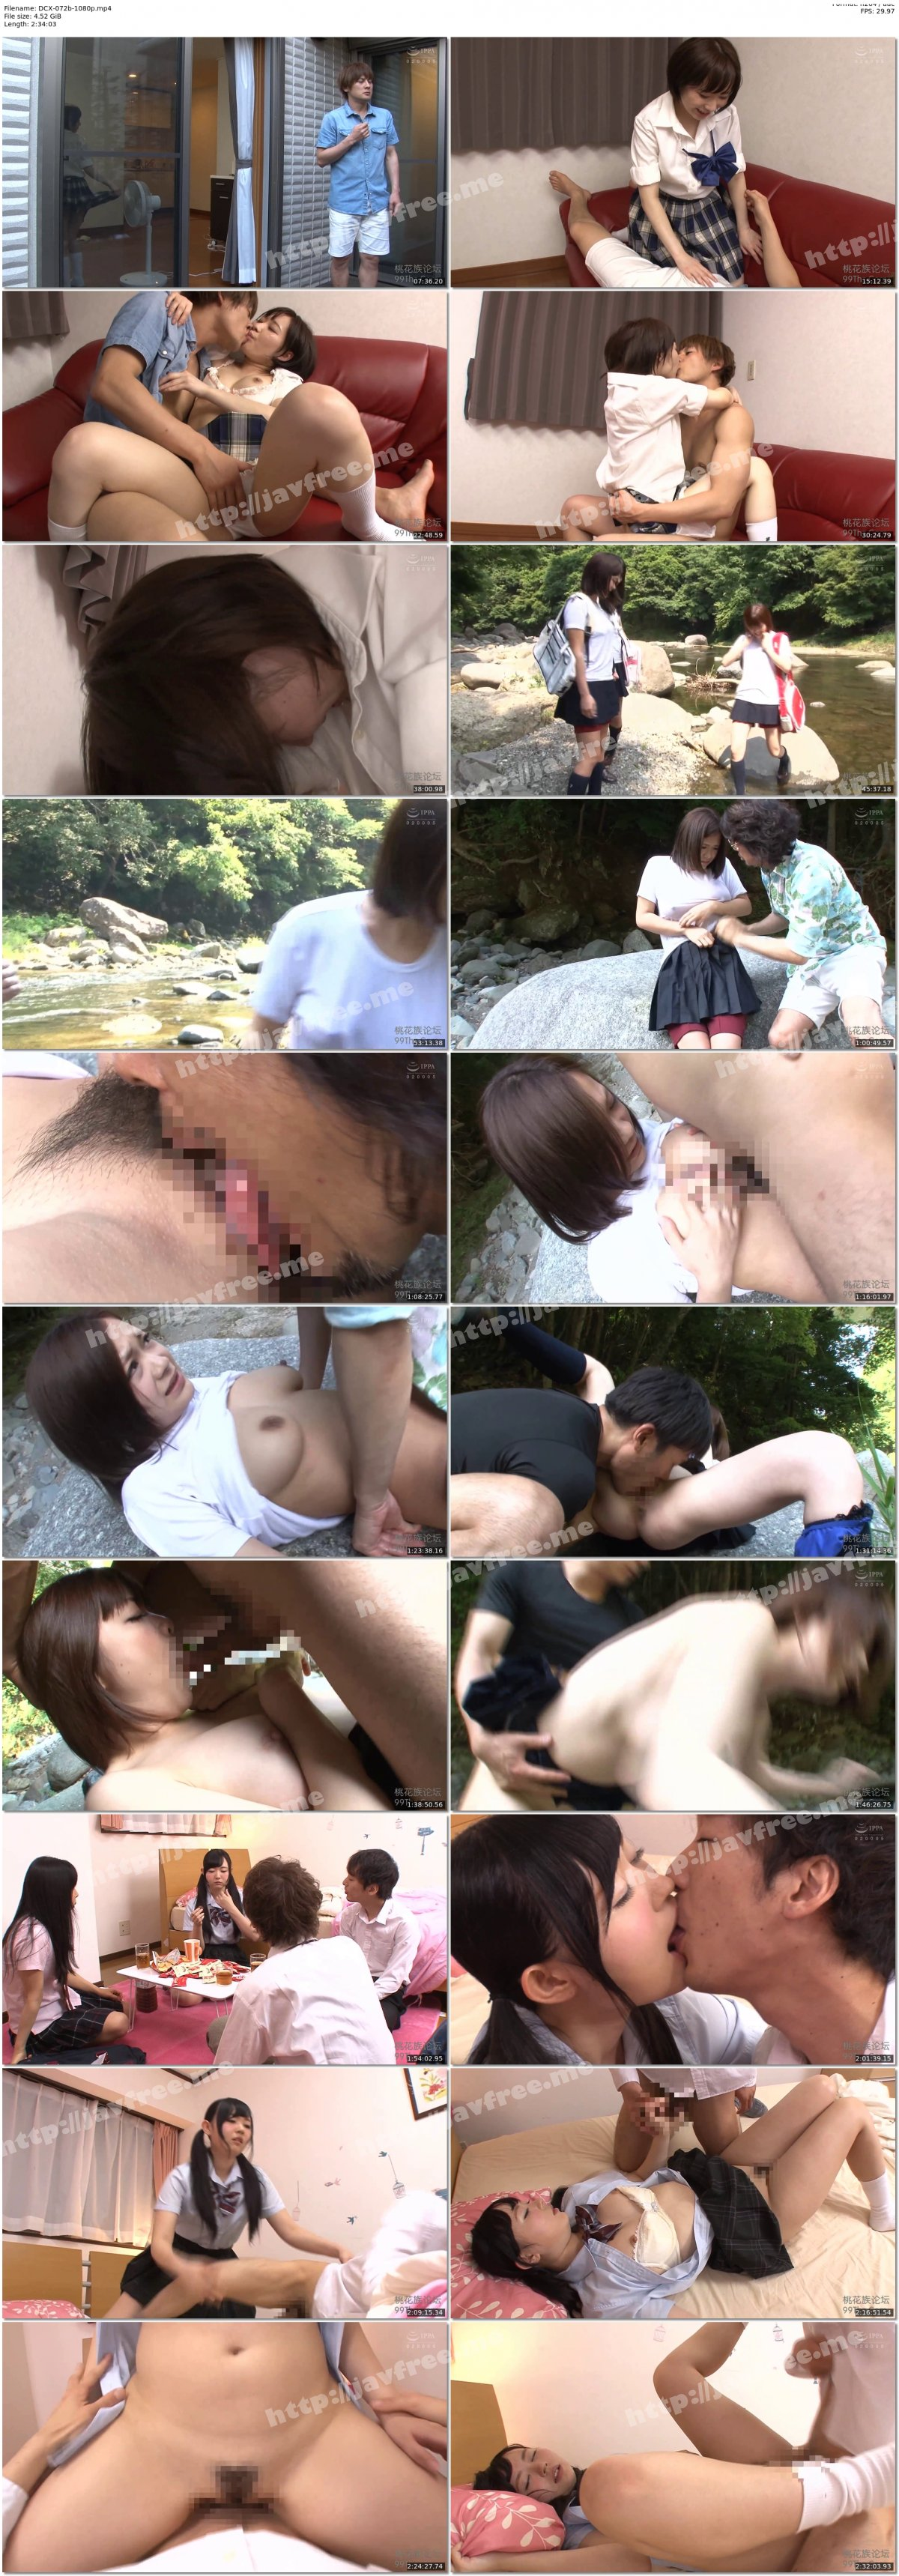 [HD][DCX-072] リアルドキュメントプラスBEST 03 - image DCX-072b-1080p on https://javfree.me